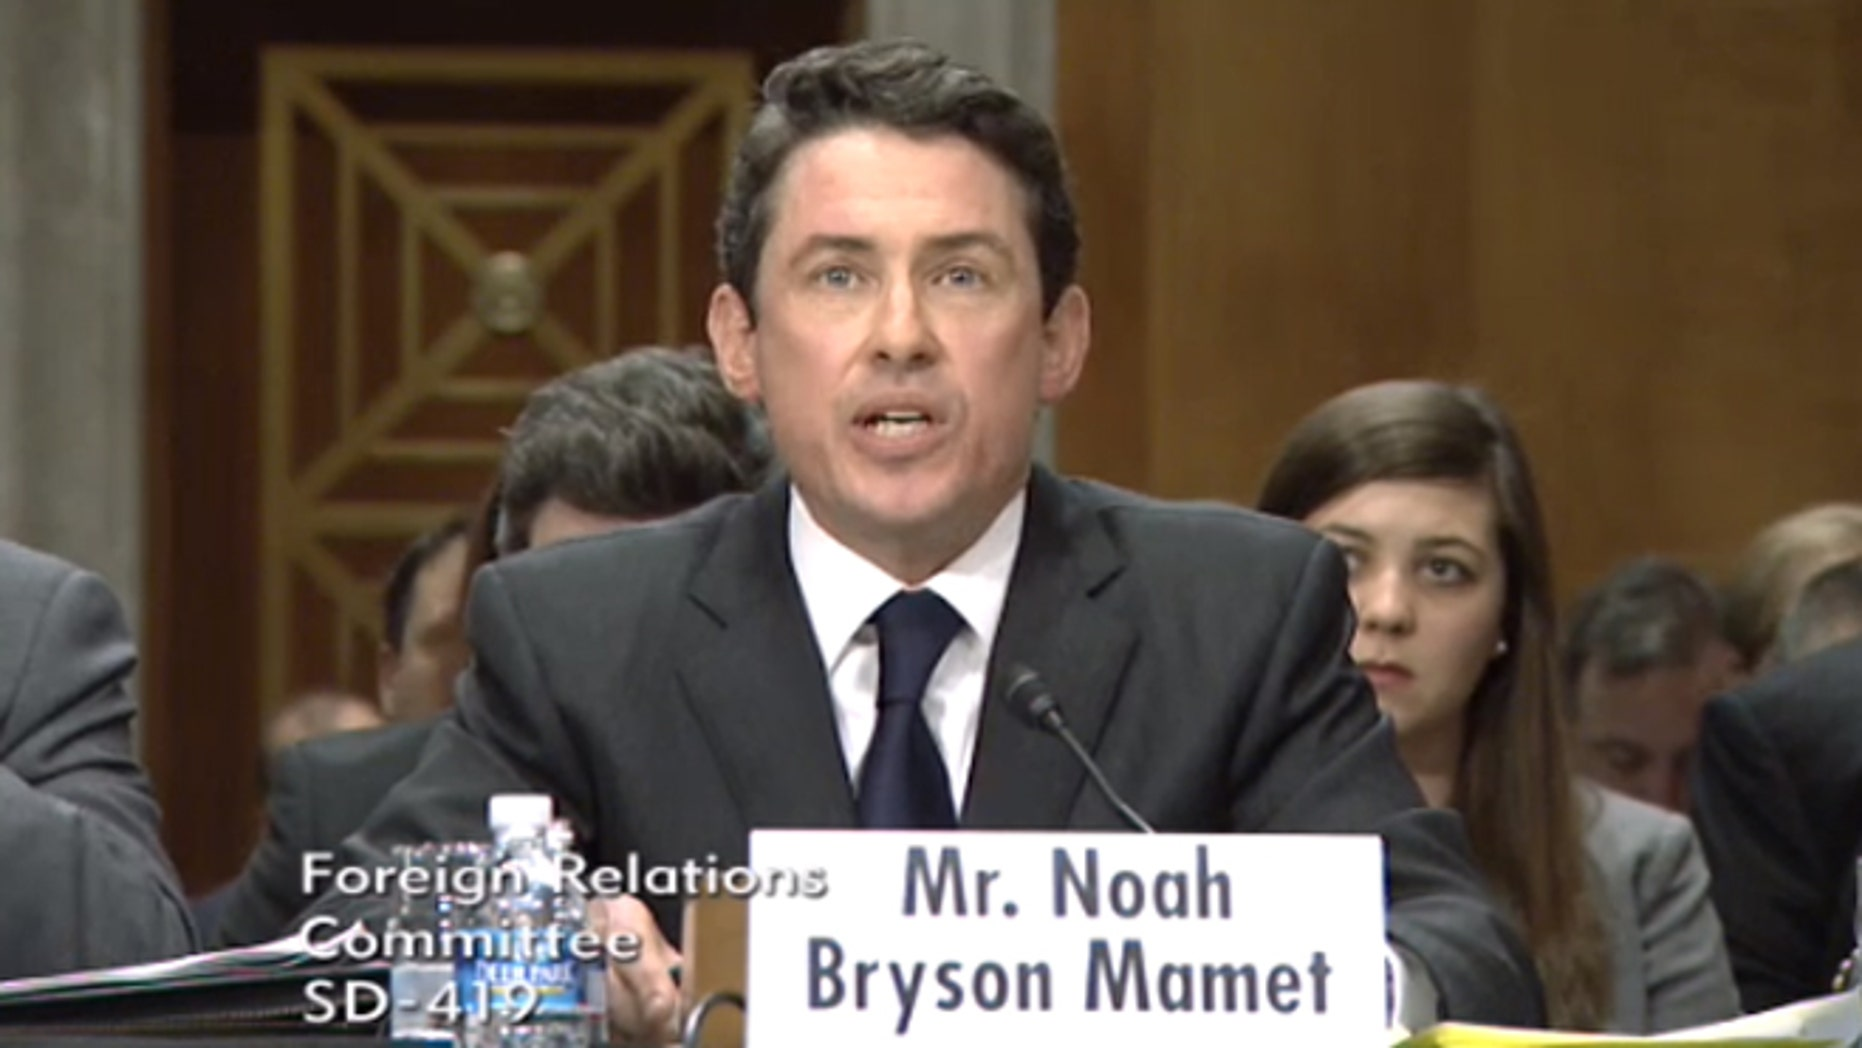 Feb. 6, 2014: Noah Bryson Mamet, nominee to be ambassador to Argentina, speaks before the Senate Foreign Relations Committee.